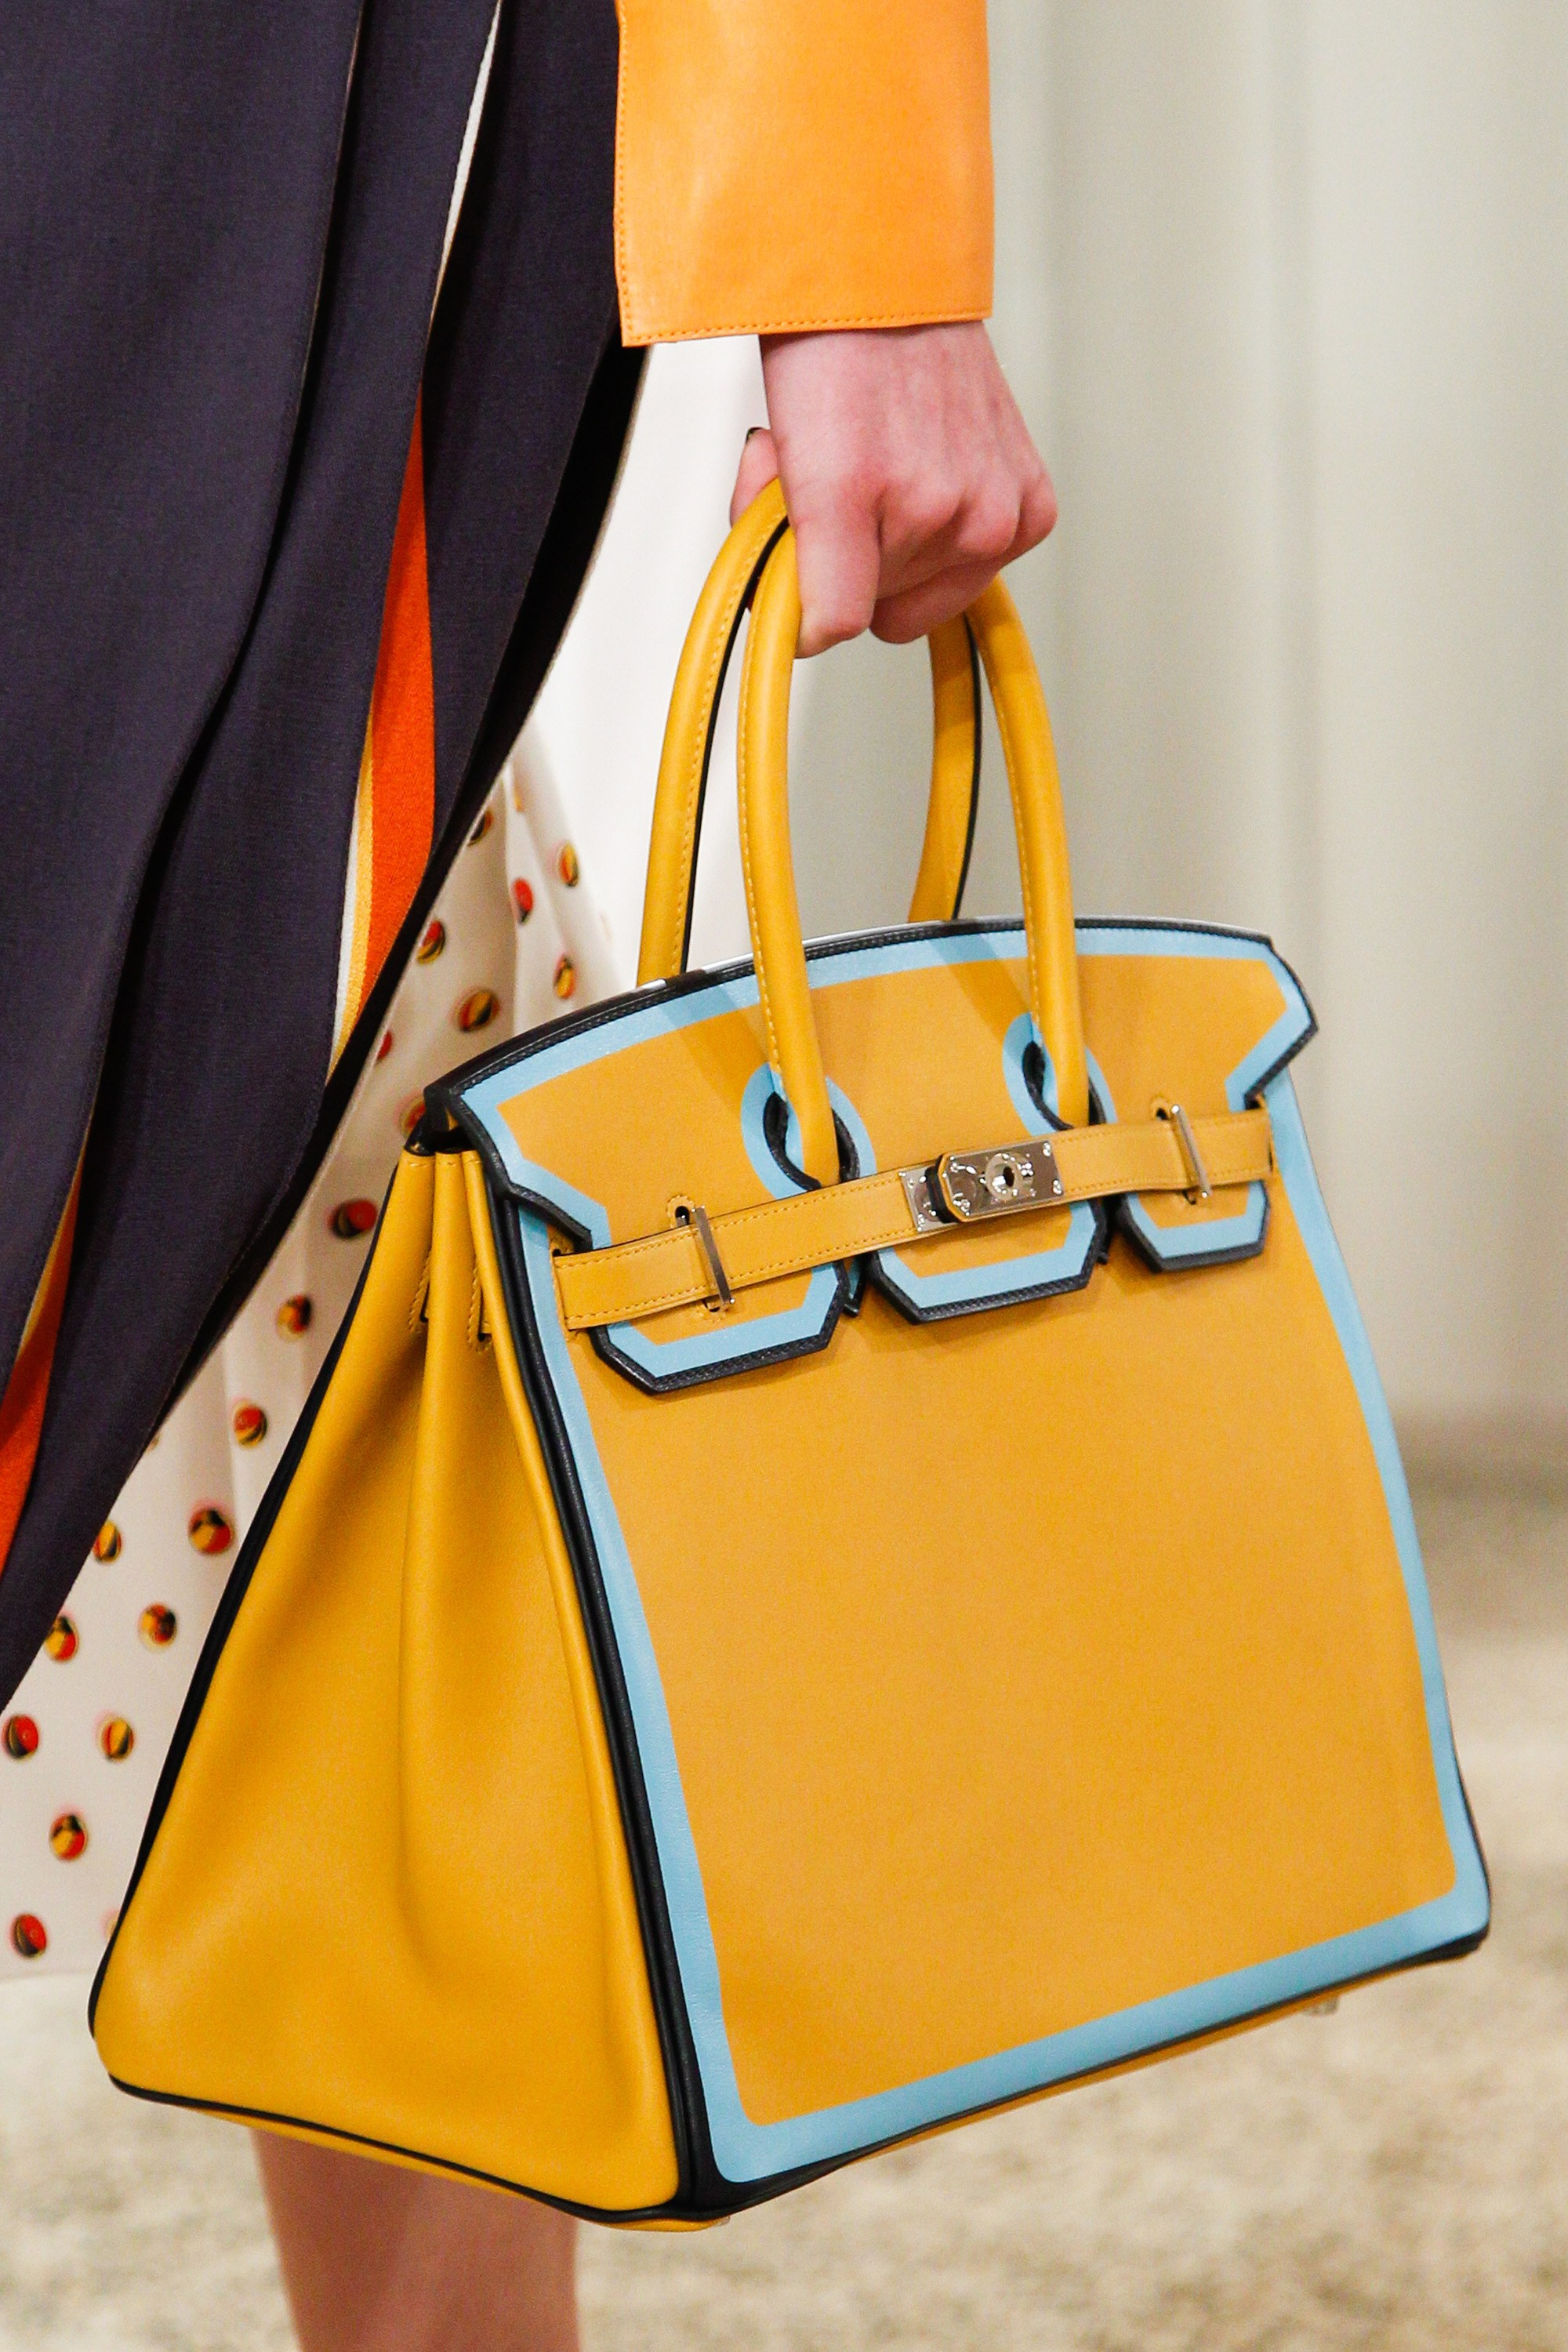 Hermes Resort 2018 Runway Bag Collection Includes Birkin ...